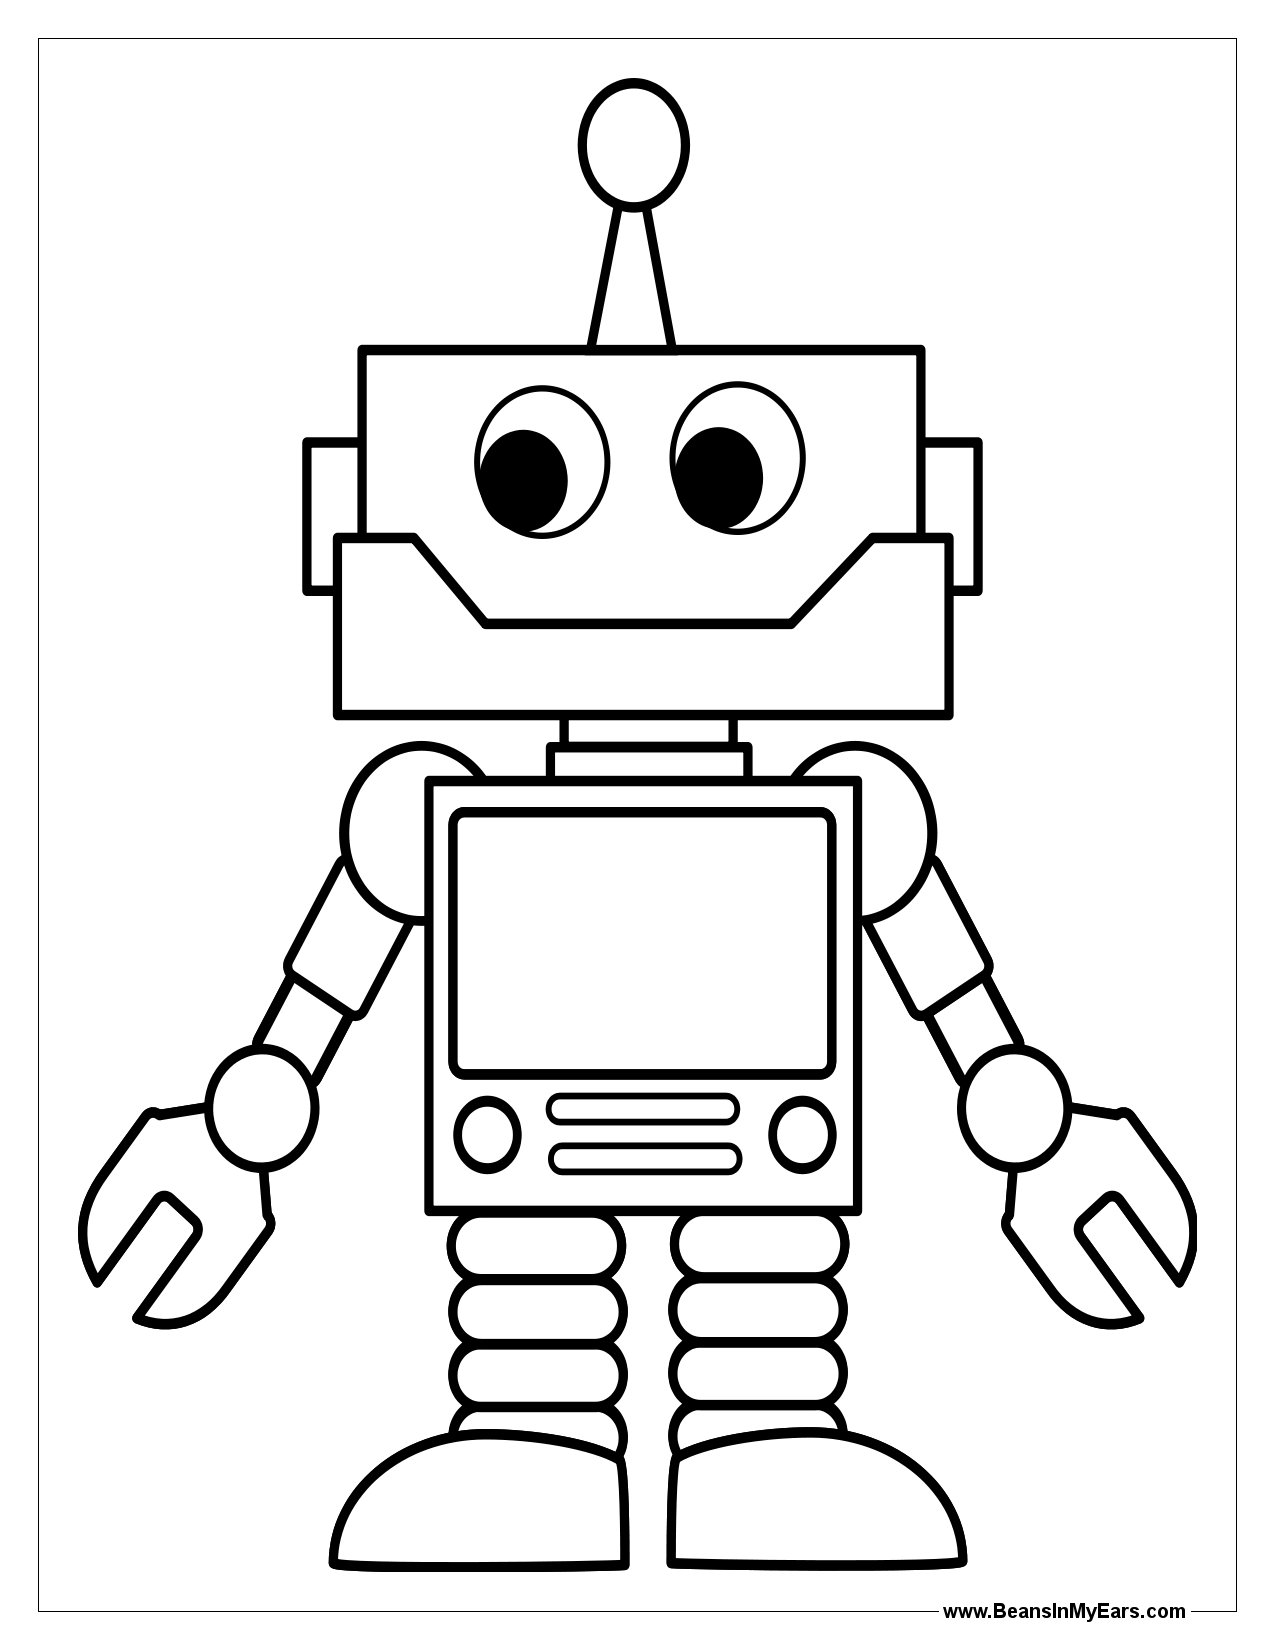 coloring robot free printable robot coloring pages for kids coloring robot